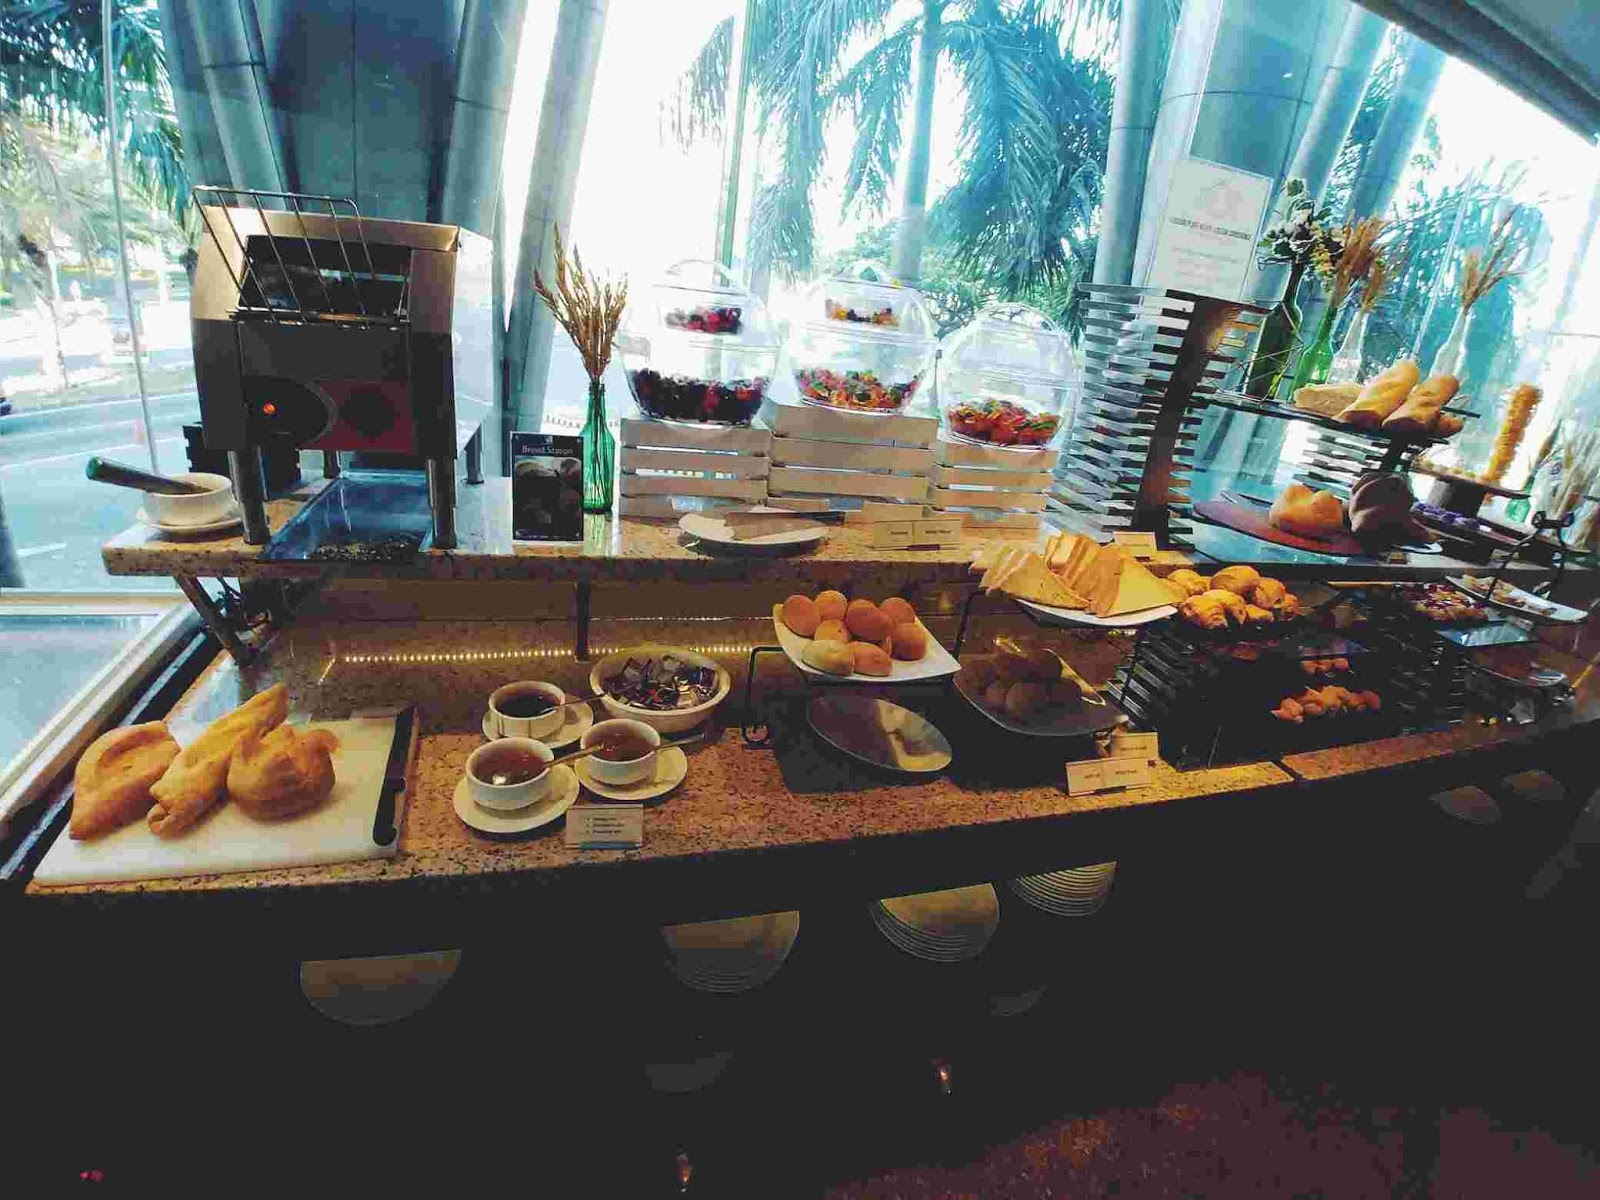 bread station at Acaci Cafe in Acacia Hotel